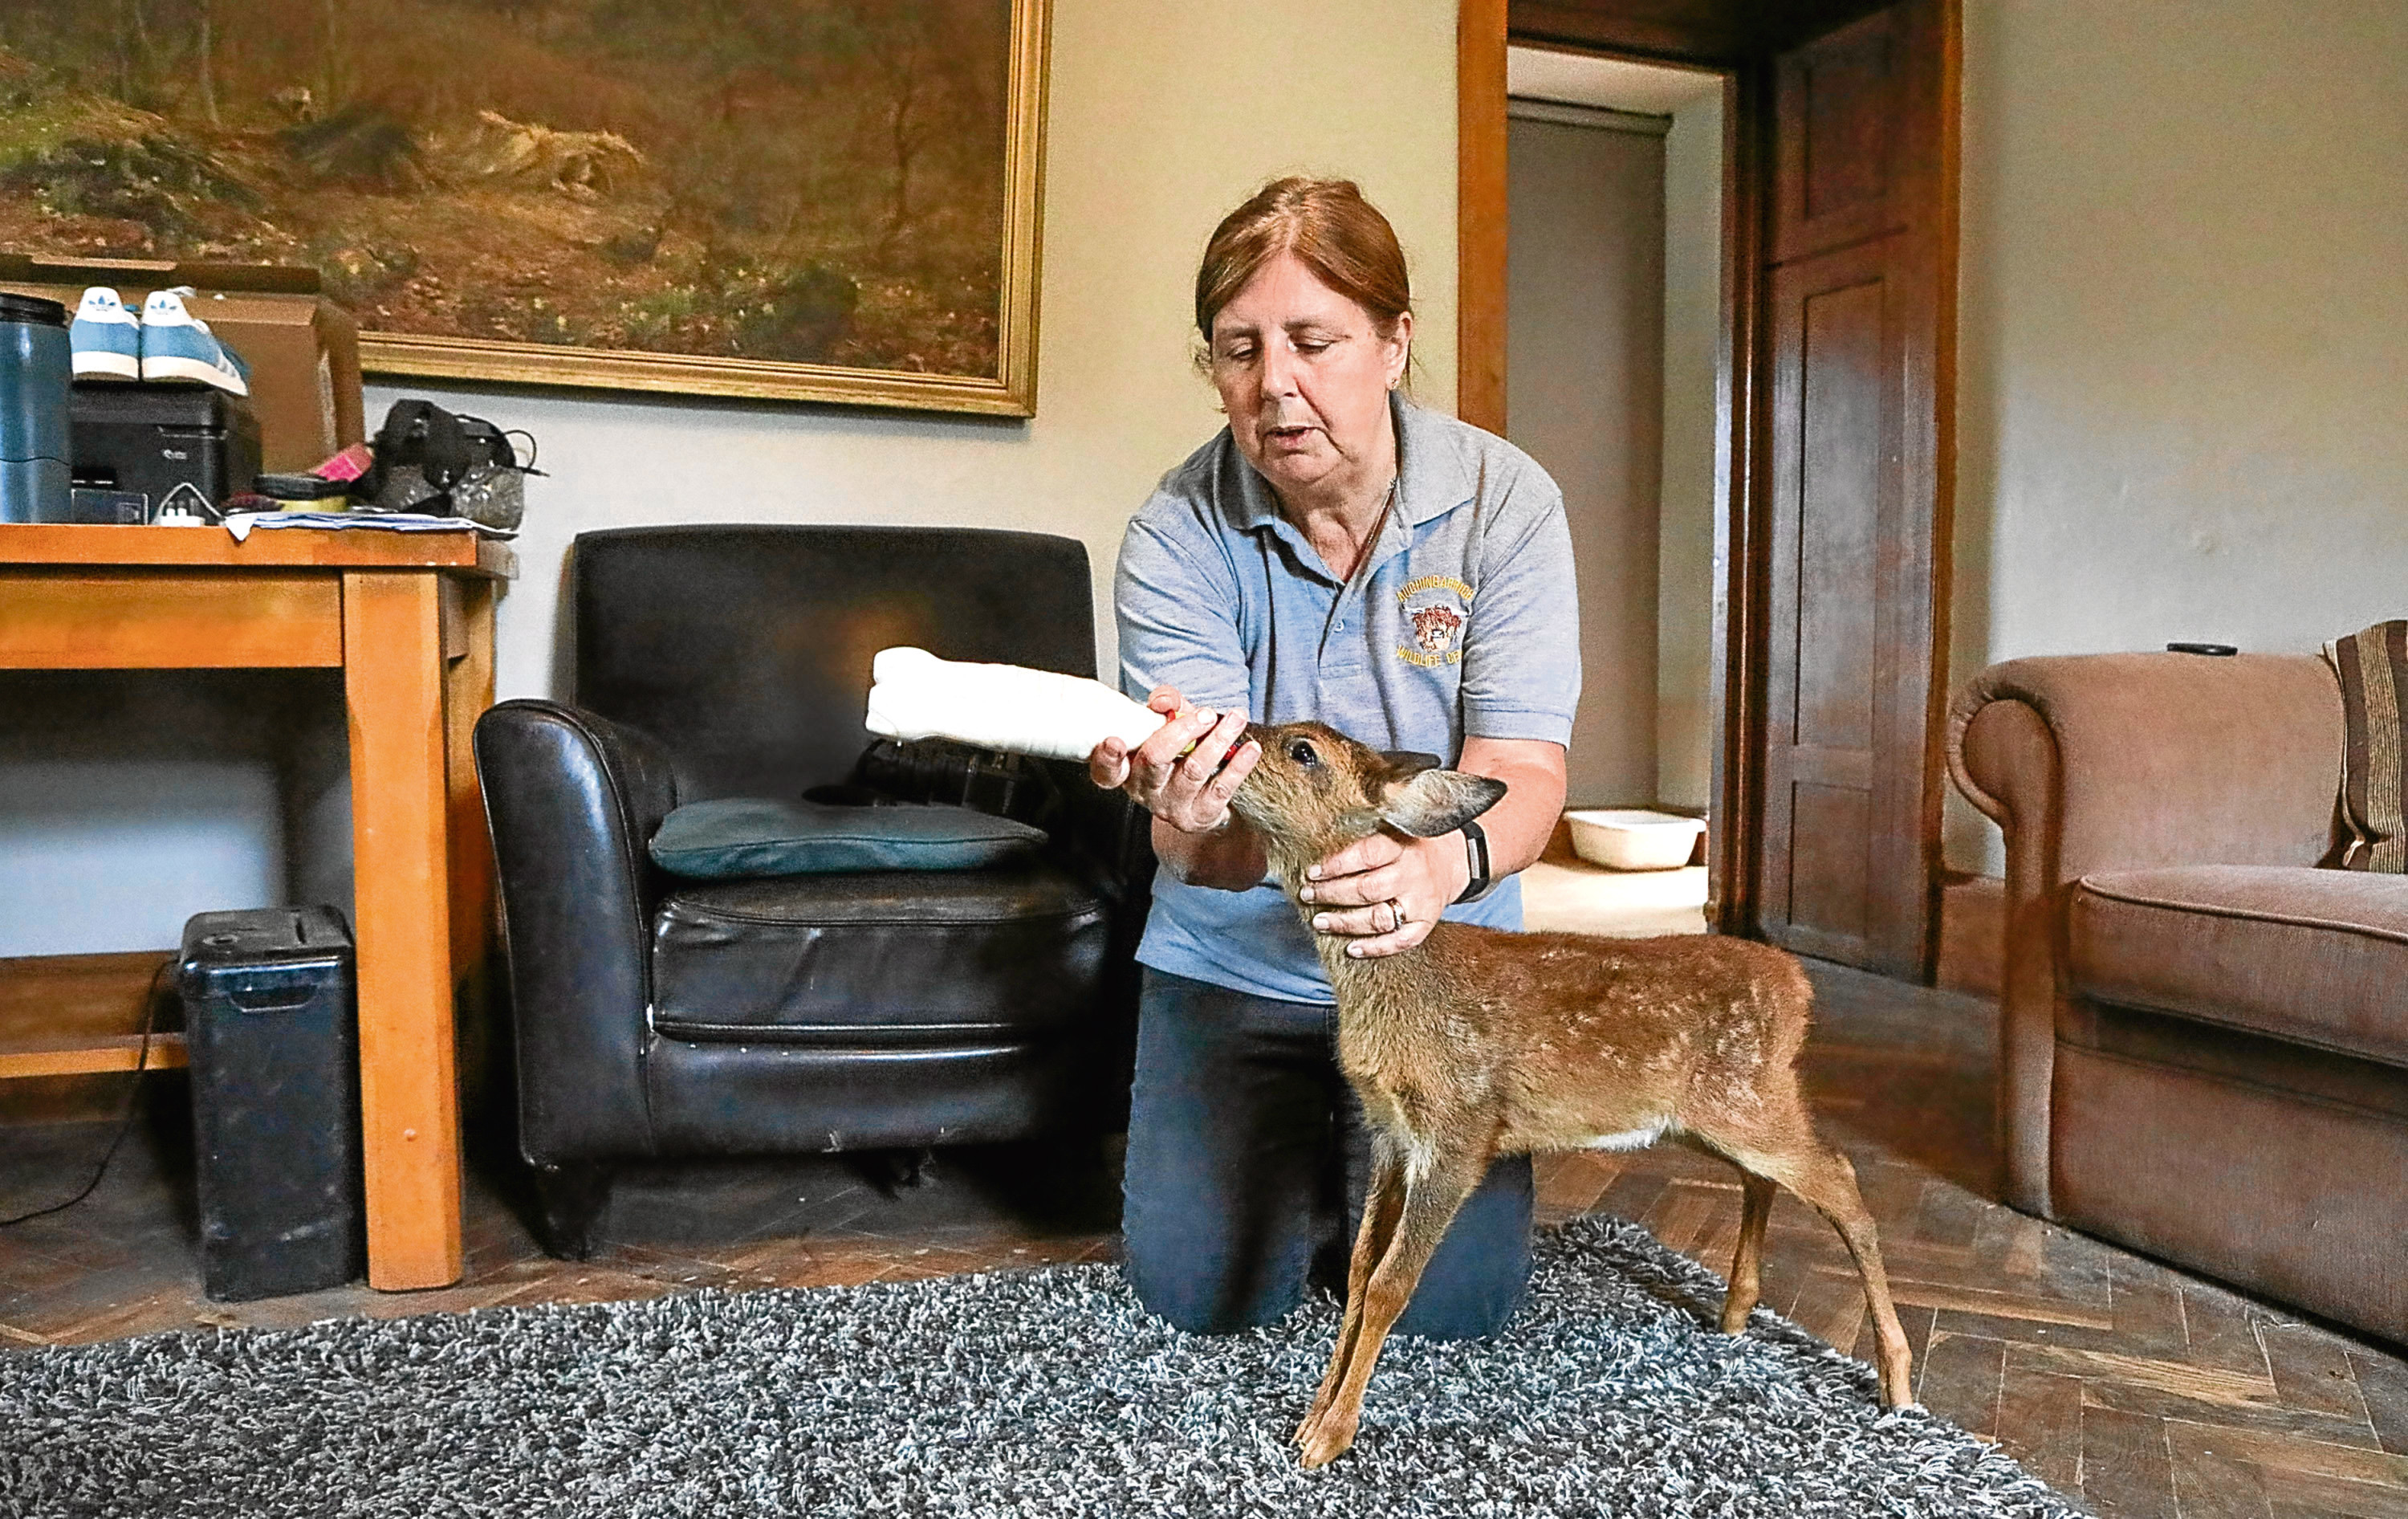 The family are raising the adorable deer fawn in their living room after it was rescued from the roadside.